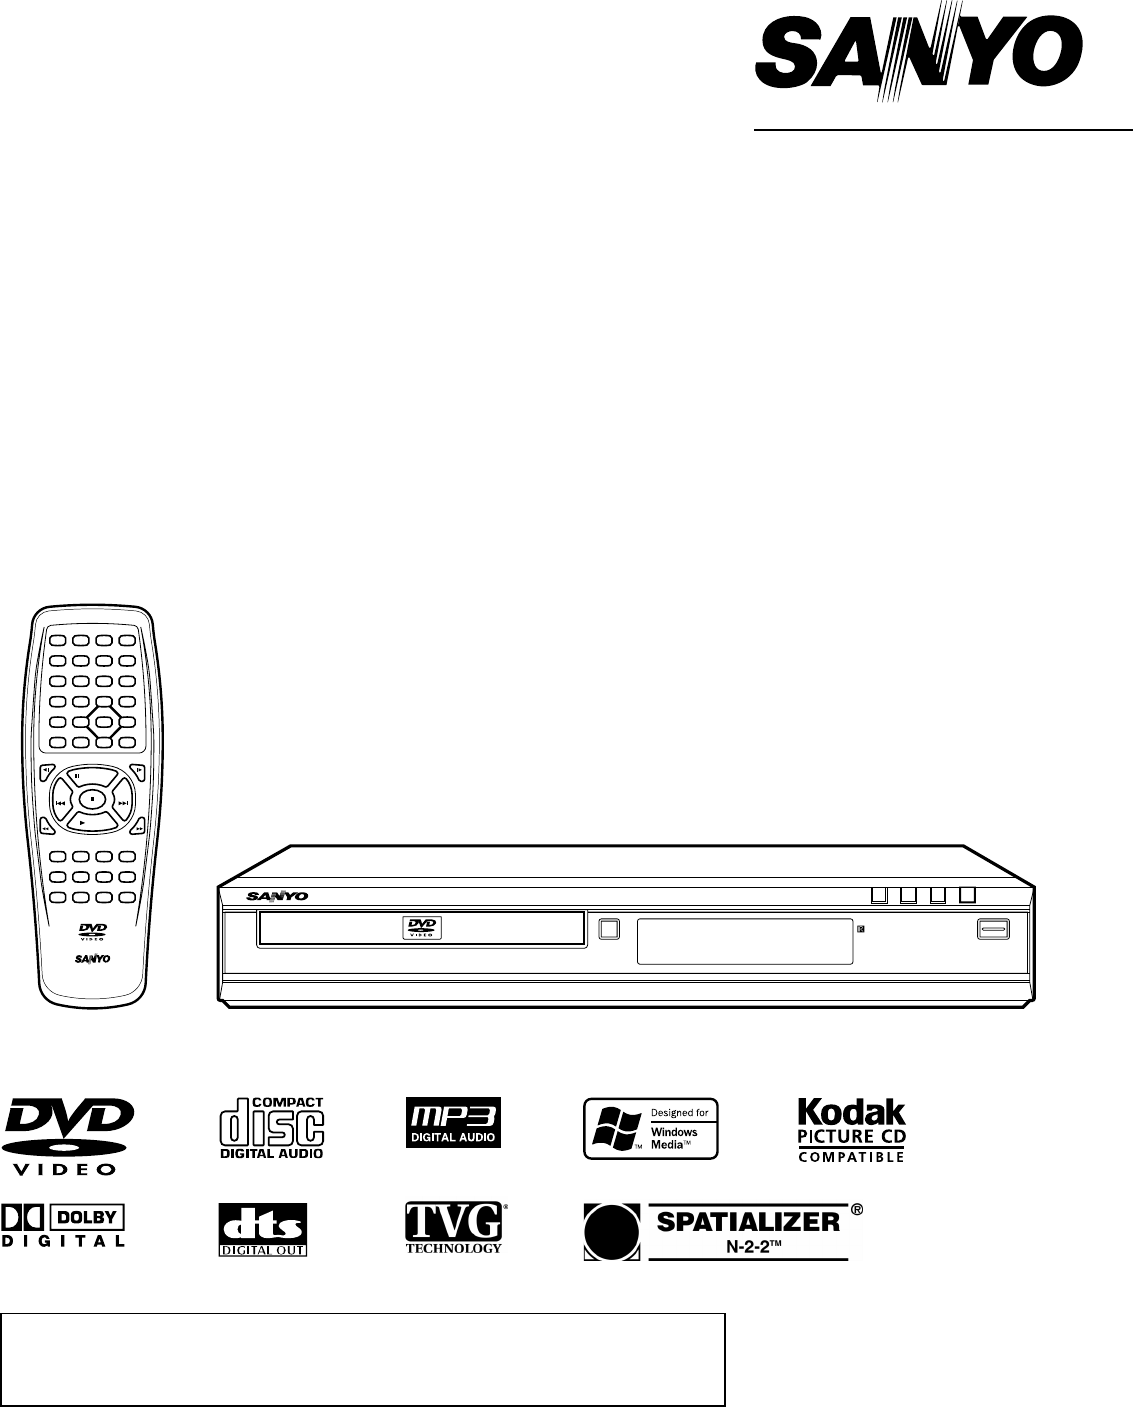 sanyo dvd player dwm 390 user guide manualsonline com rh tv manualsonline com sanyo dvd player manual for model fwbp506ff sony dvd player manuals free download